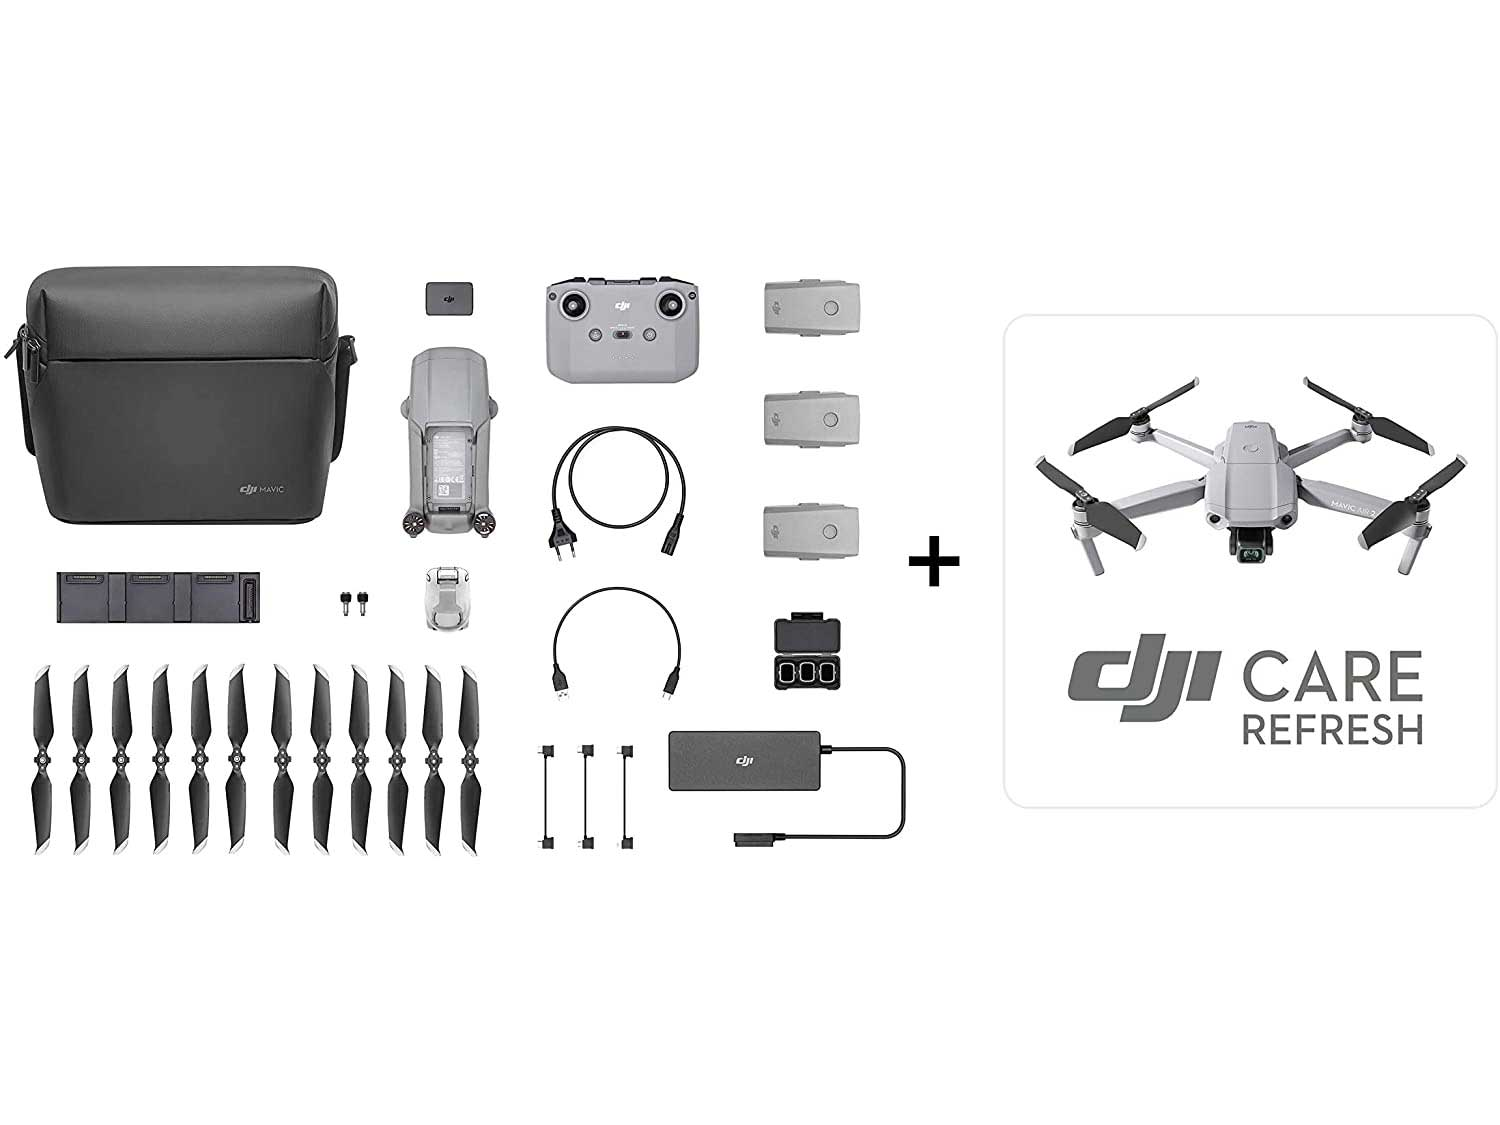 DJI Mavic Air 2 Fly More Combo & Auto-Activated DJI Care Refresh Bundle-Drone Quadcopter UAV with 48MP Camera 4K Video 1/2